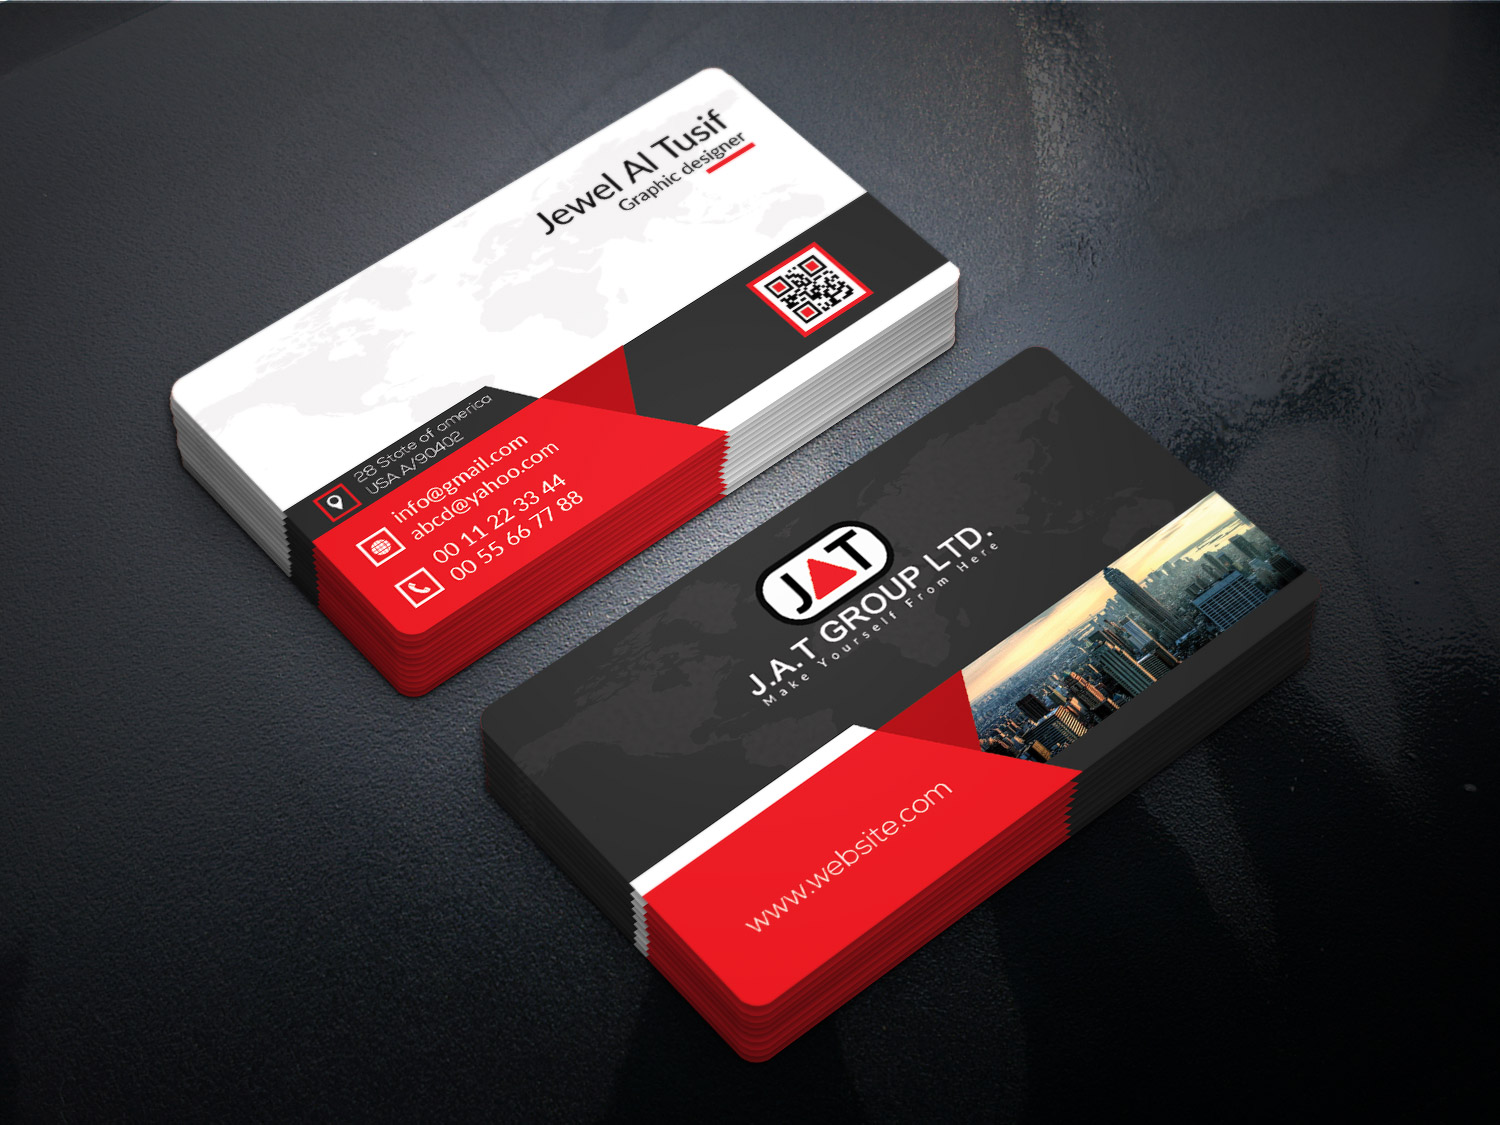 Design A Marvelous Business Card in 24 Hour